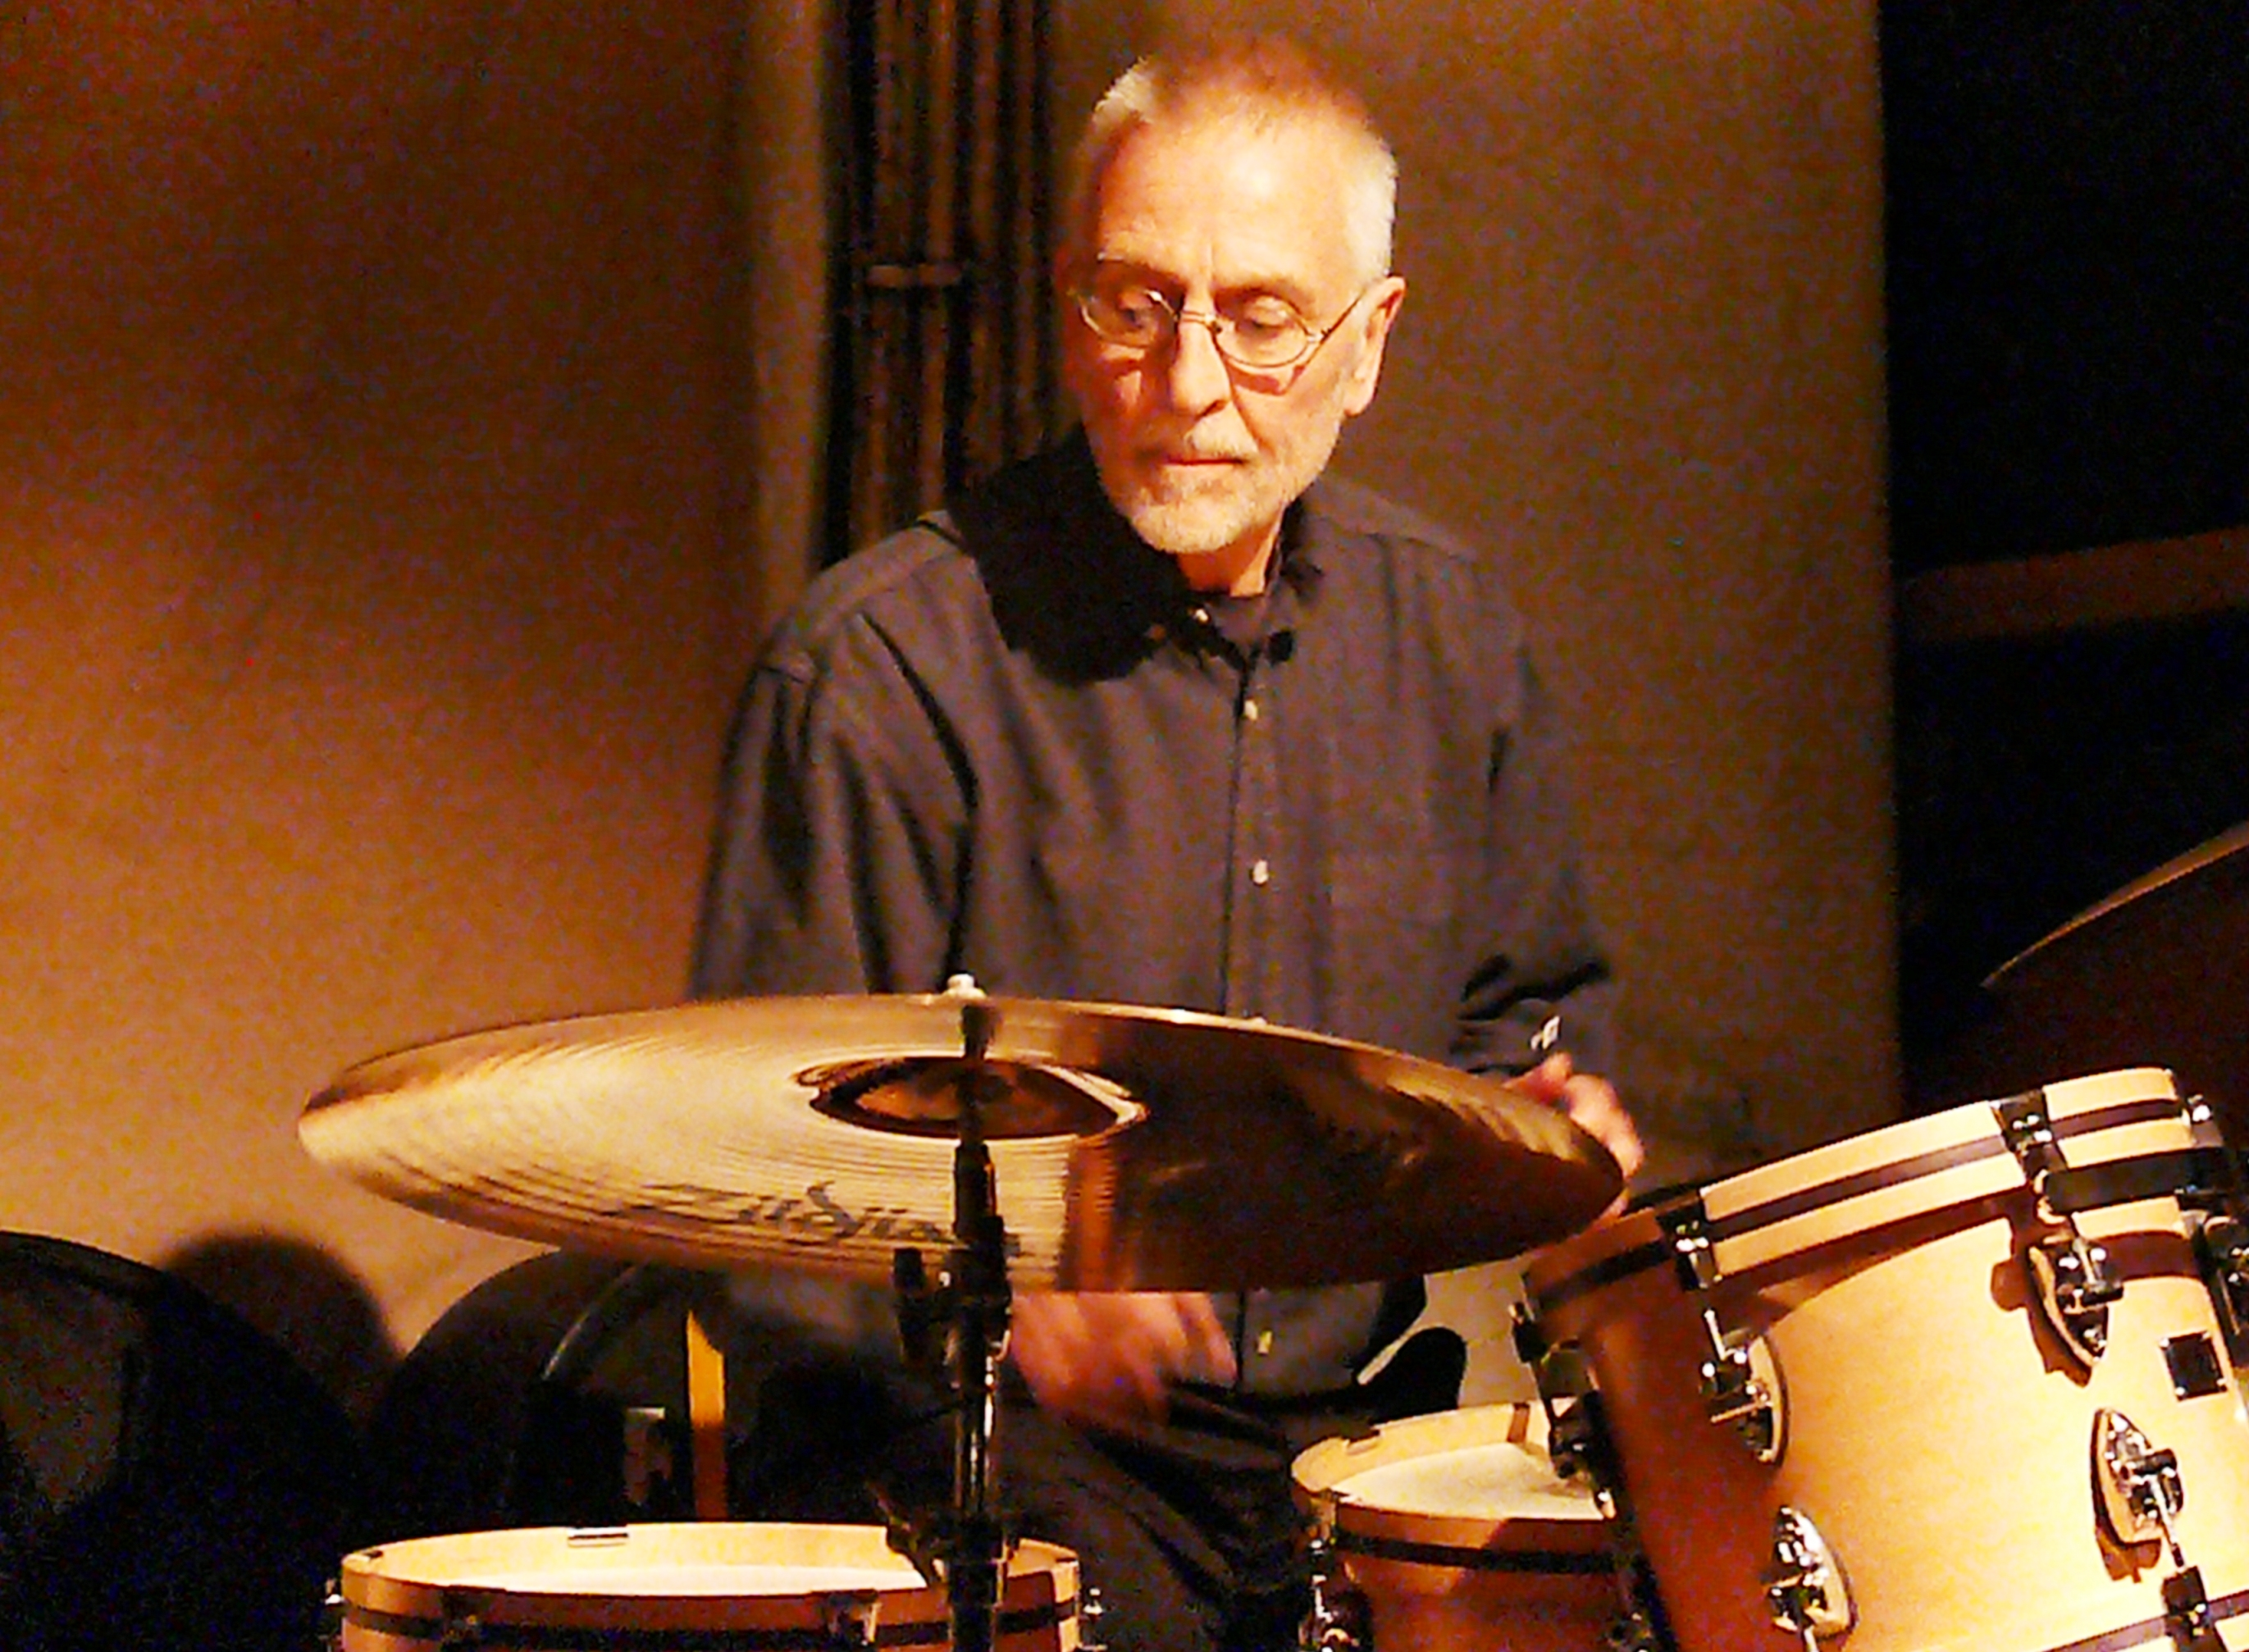 At Cafe Oto, London in November 2012